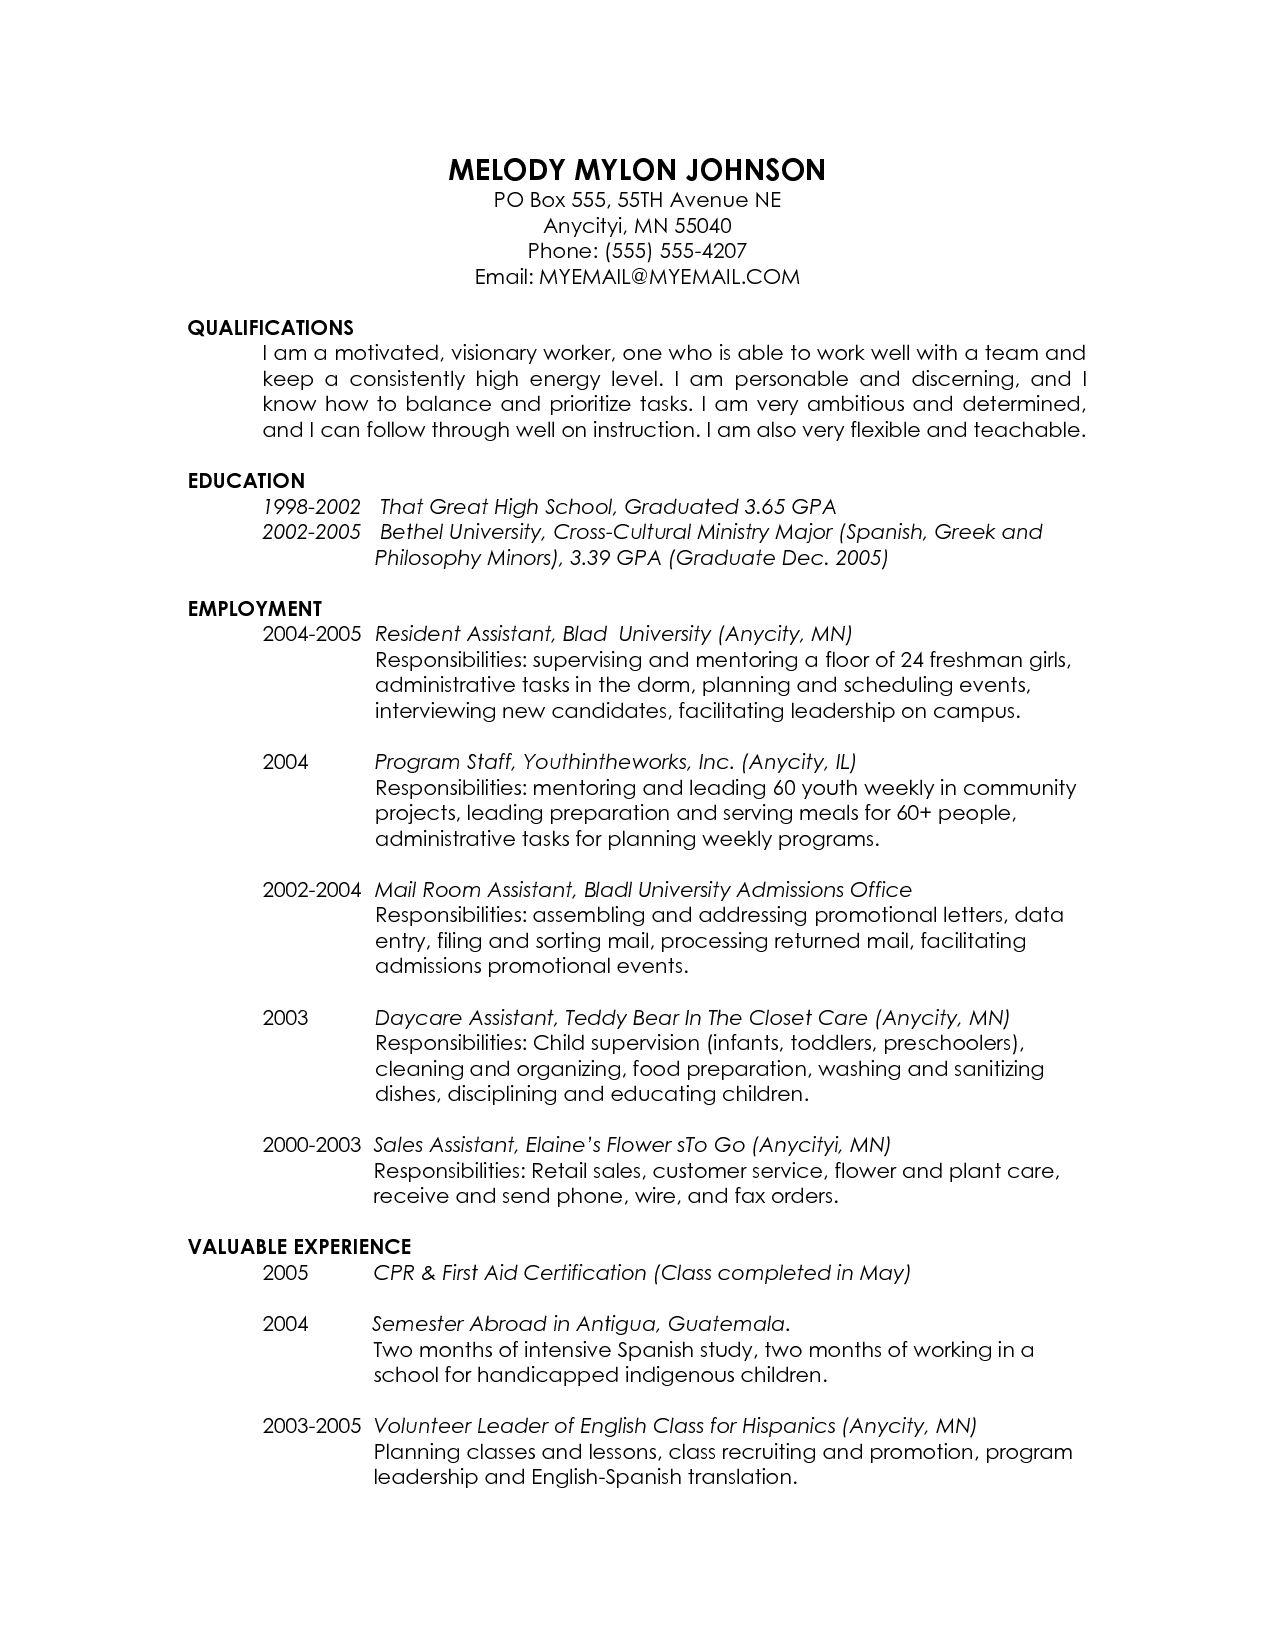 Resume Templates For Recent College Graduates International Student Recruiter Sample Resume Small Business Bad